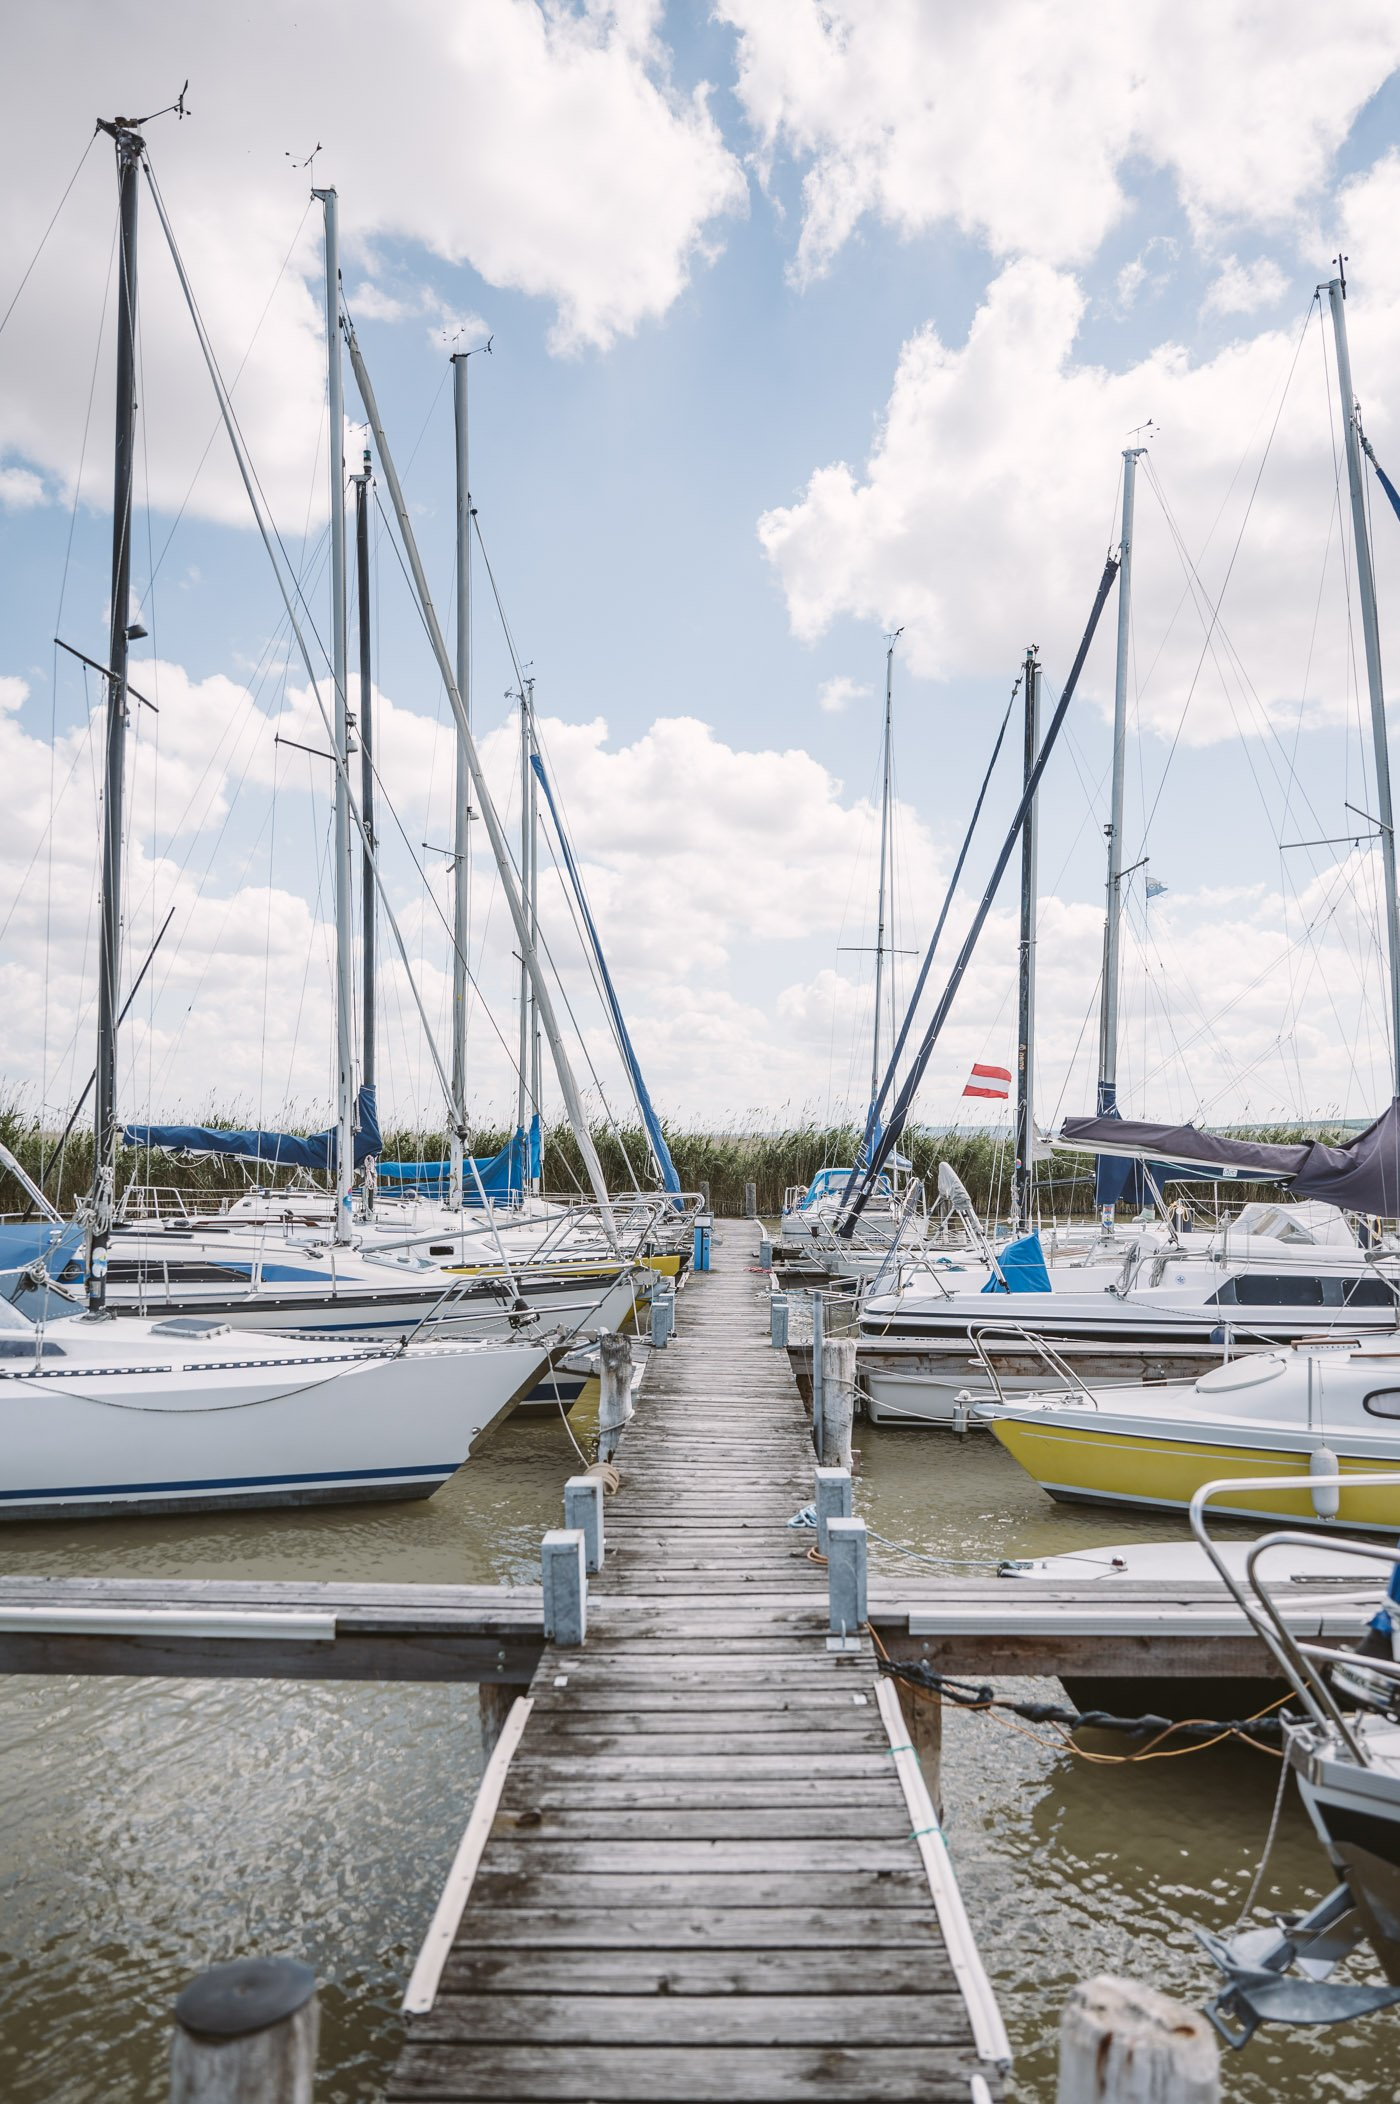 Yacht harbor in Rust at lake Neusiedlersee